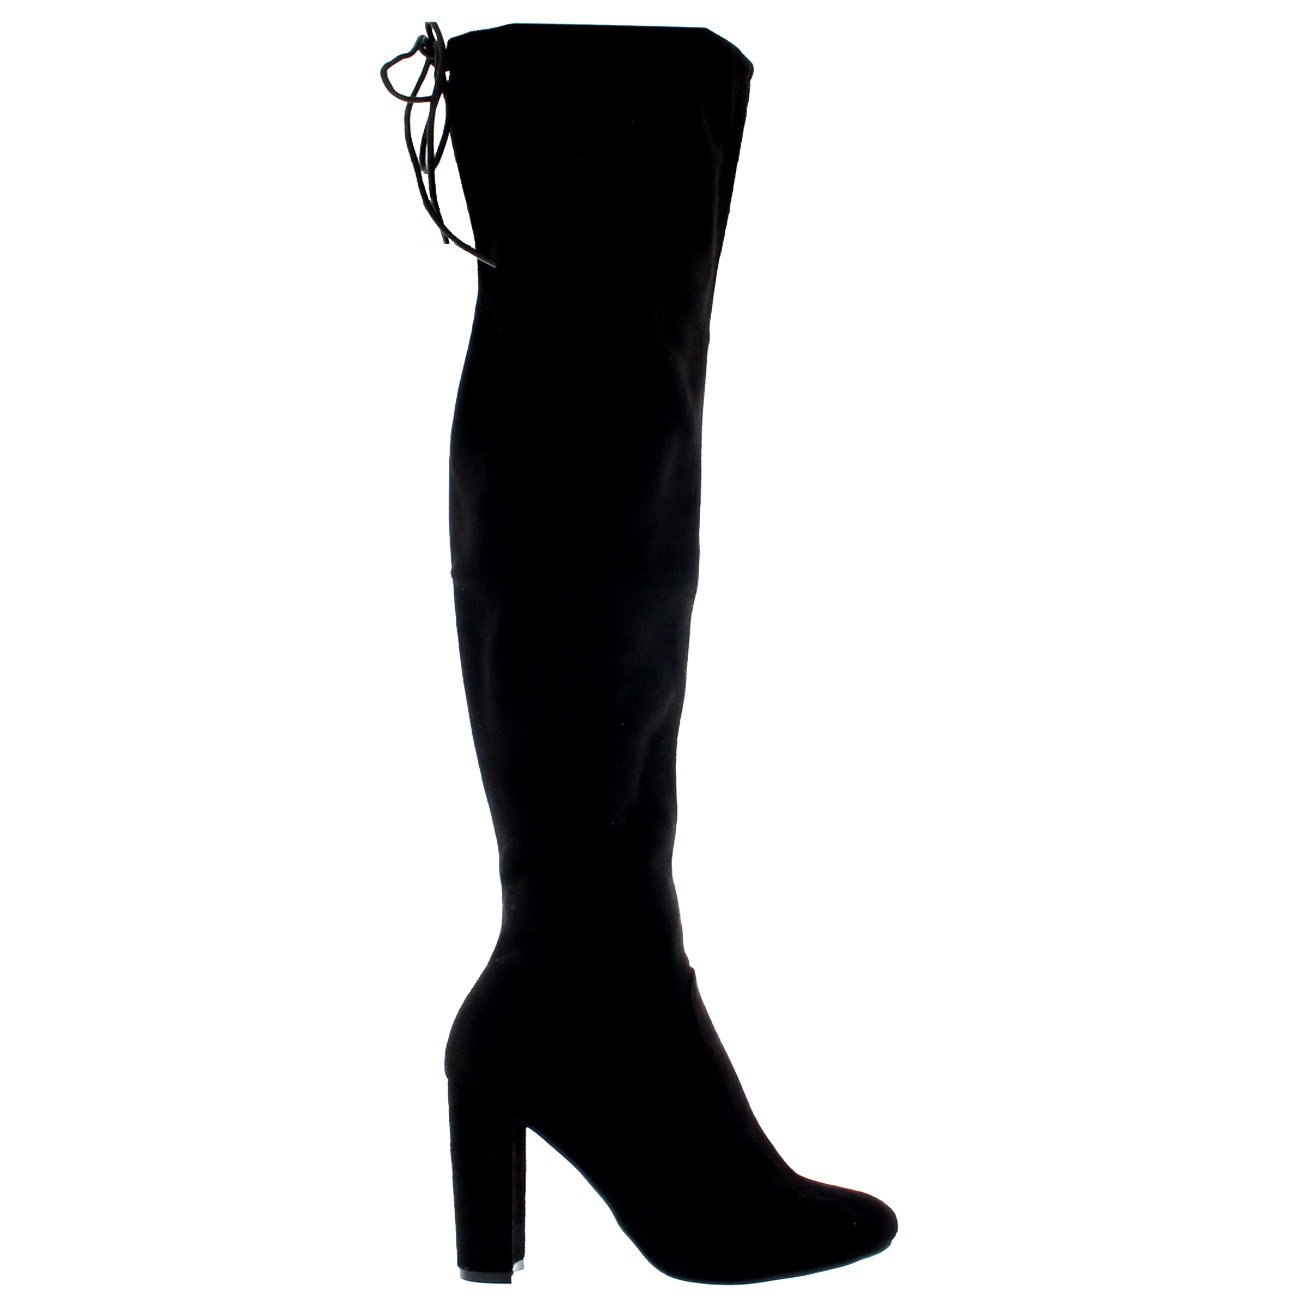 ad5b68a32ff6 Womens Block Heel Stretch Long Over The Knee Riding Wide Fit High Boots   Amazon.co.uk  Shoes   Bags